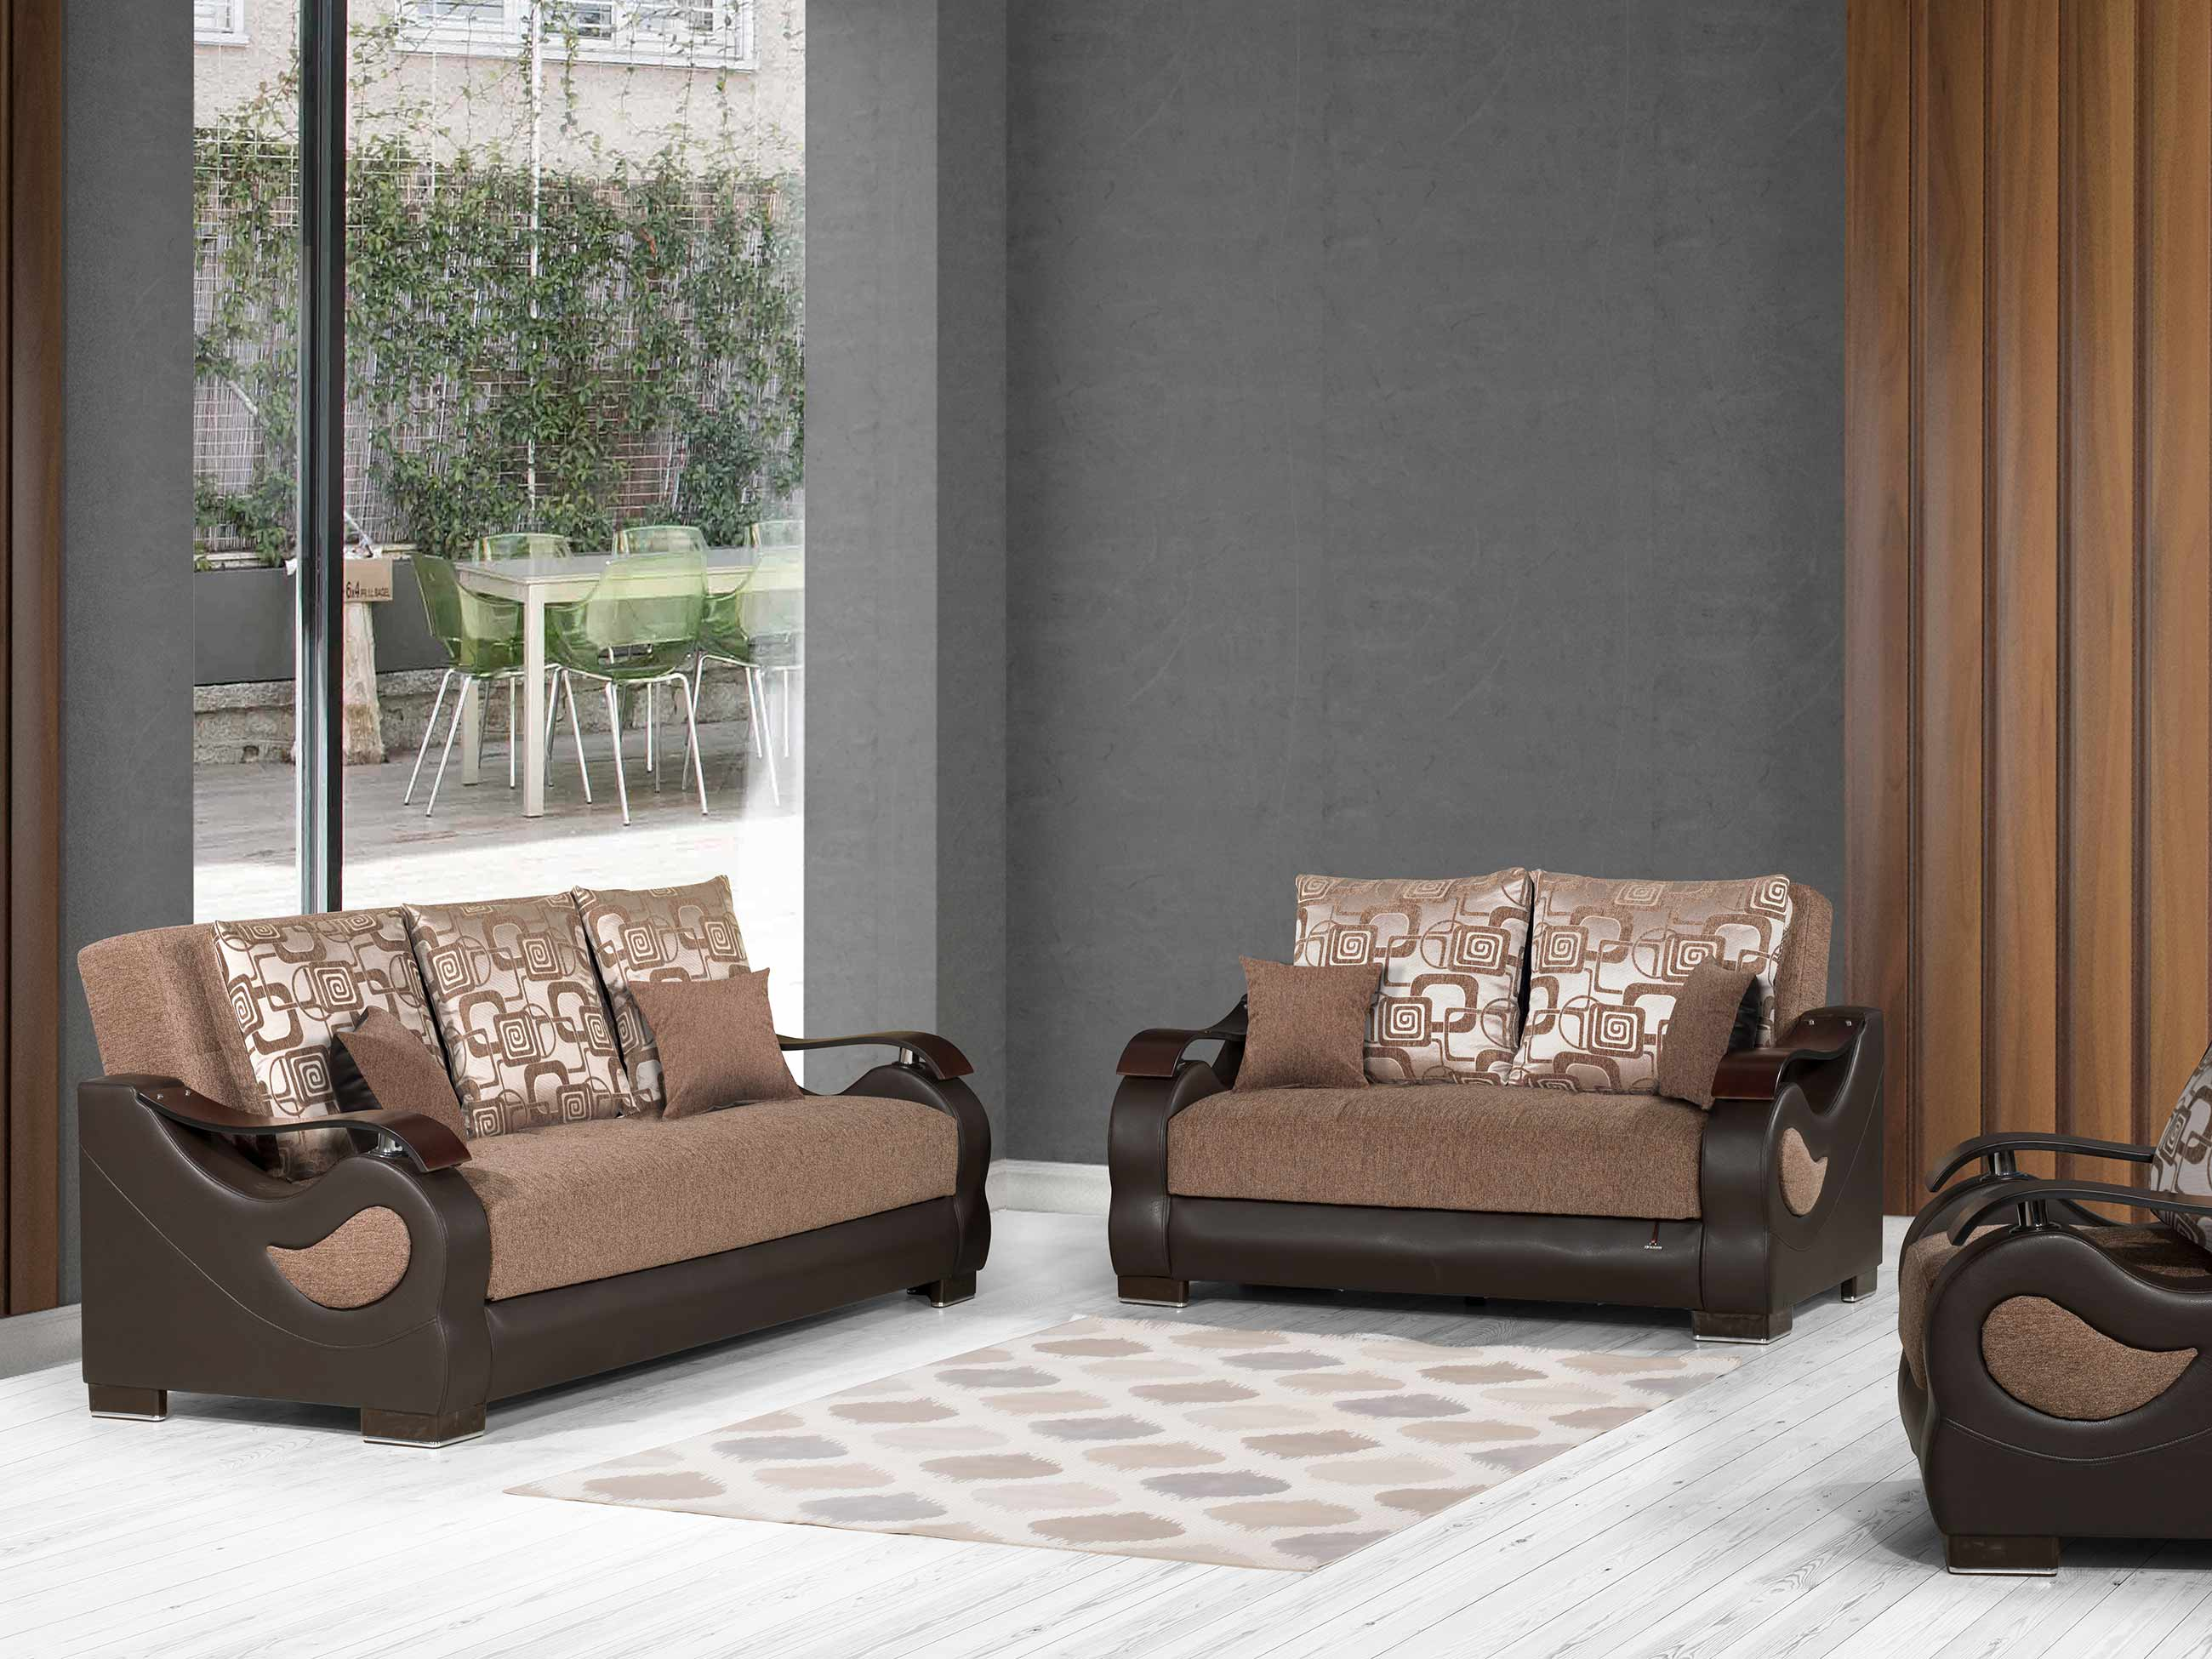 Metroplex Brown Chenille Convertible Chair by Casamode